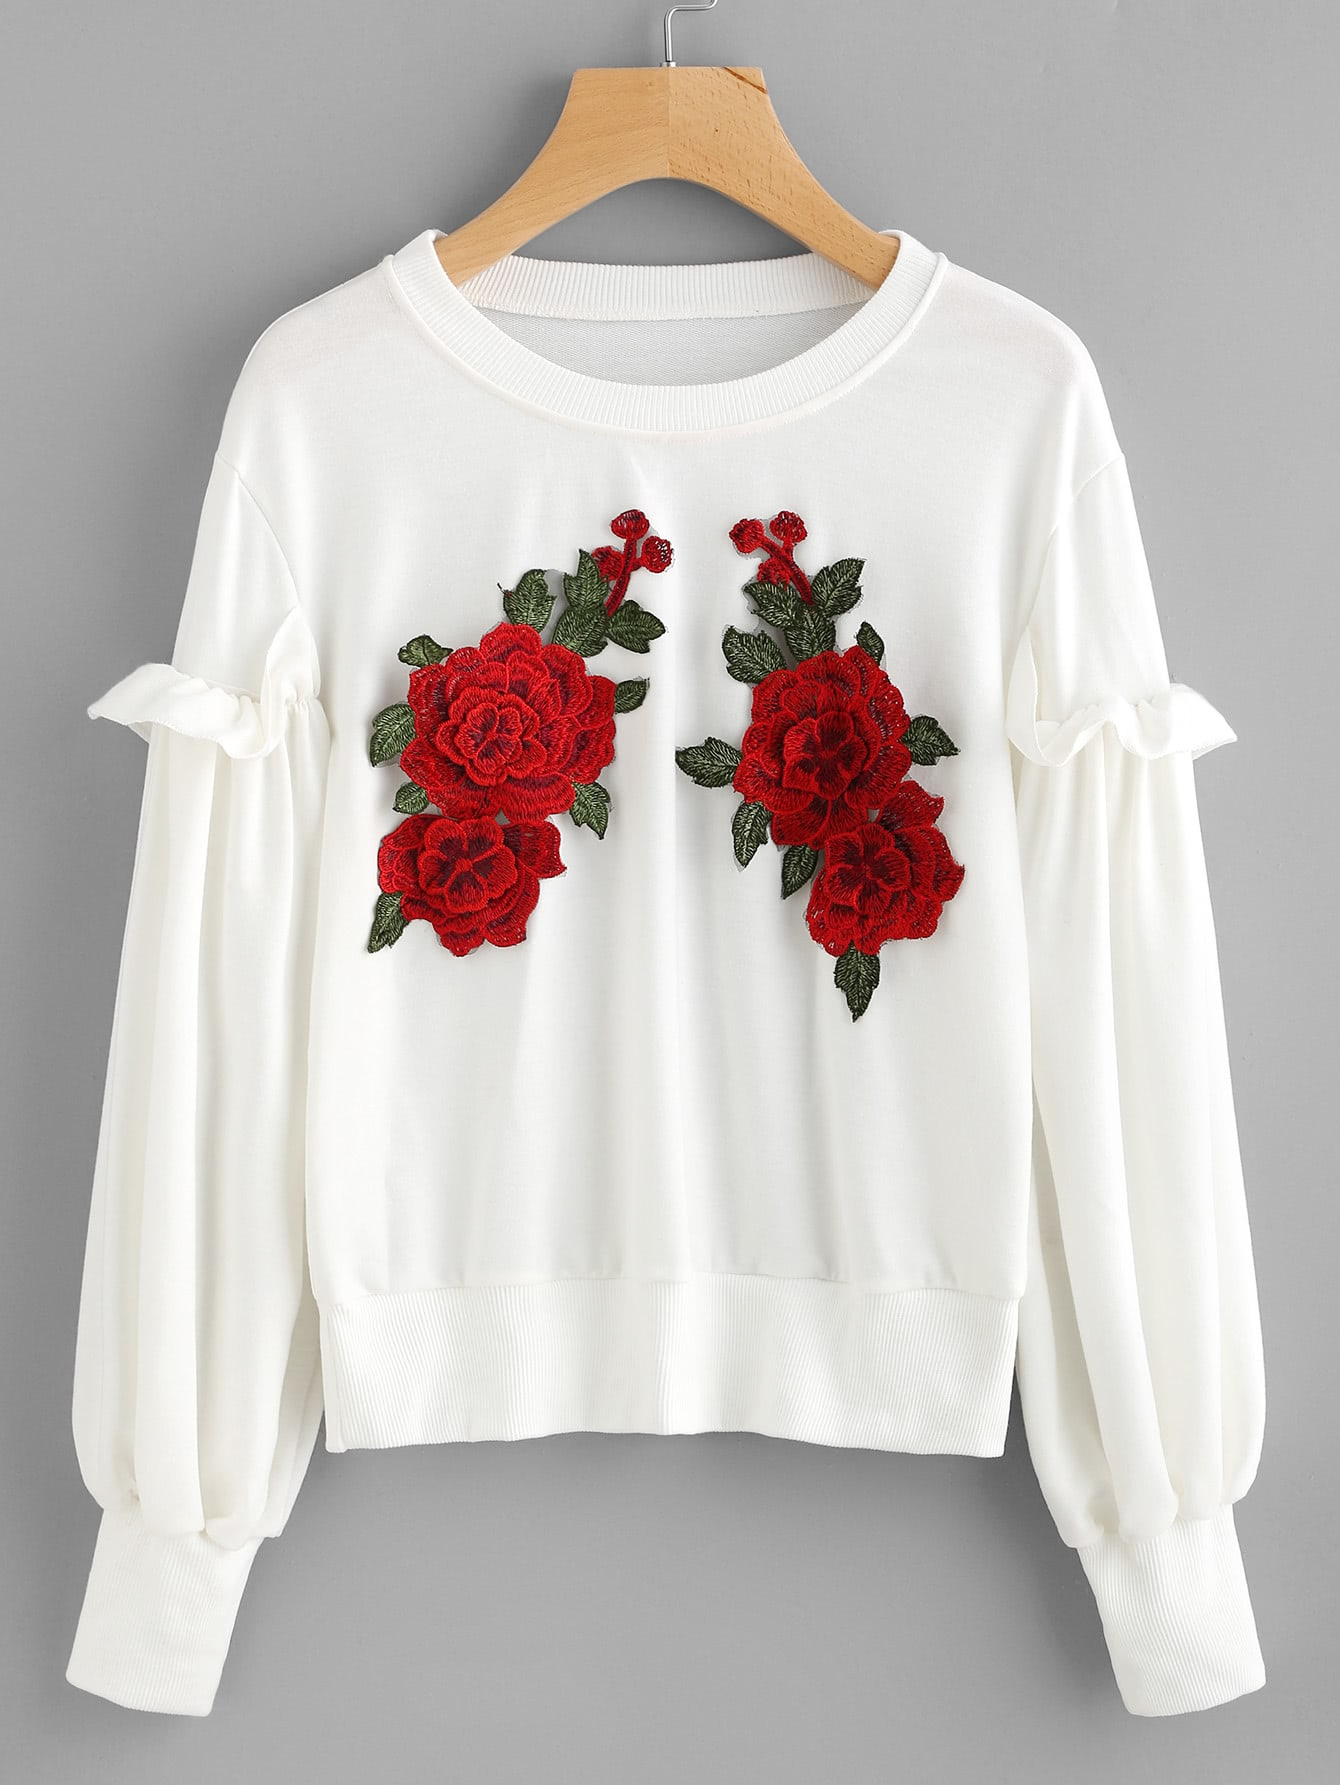 3D Embroidered Appliques Frill Sweatshirt contrast check plaid embroidered appliques sweatshirt